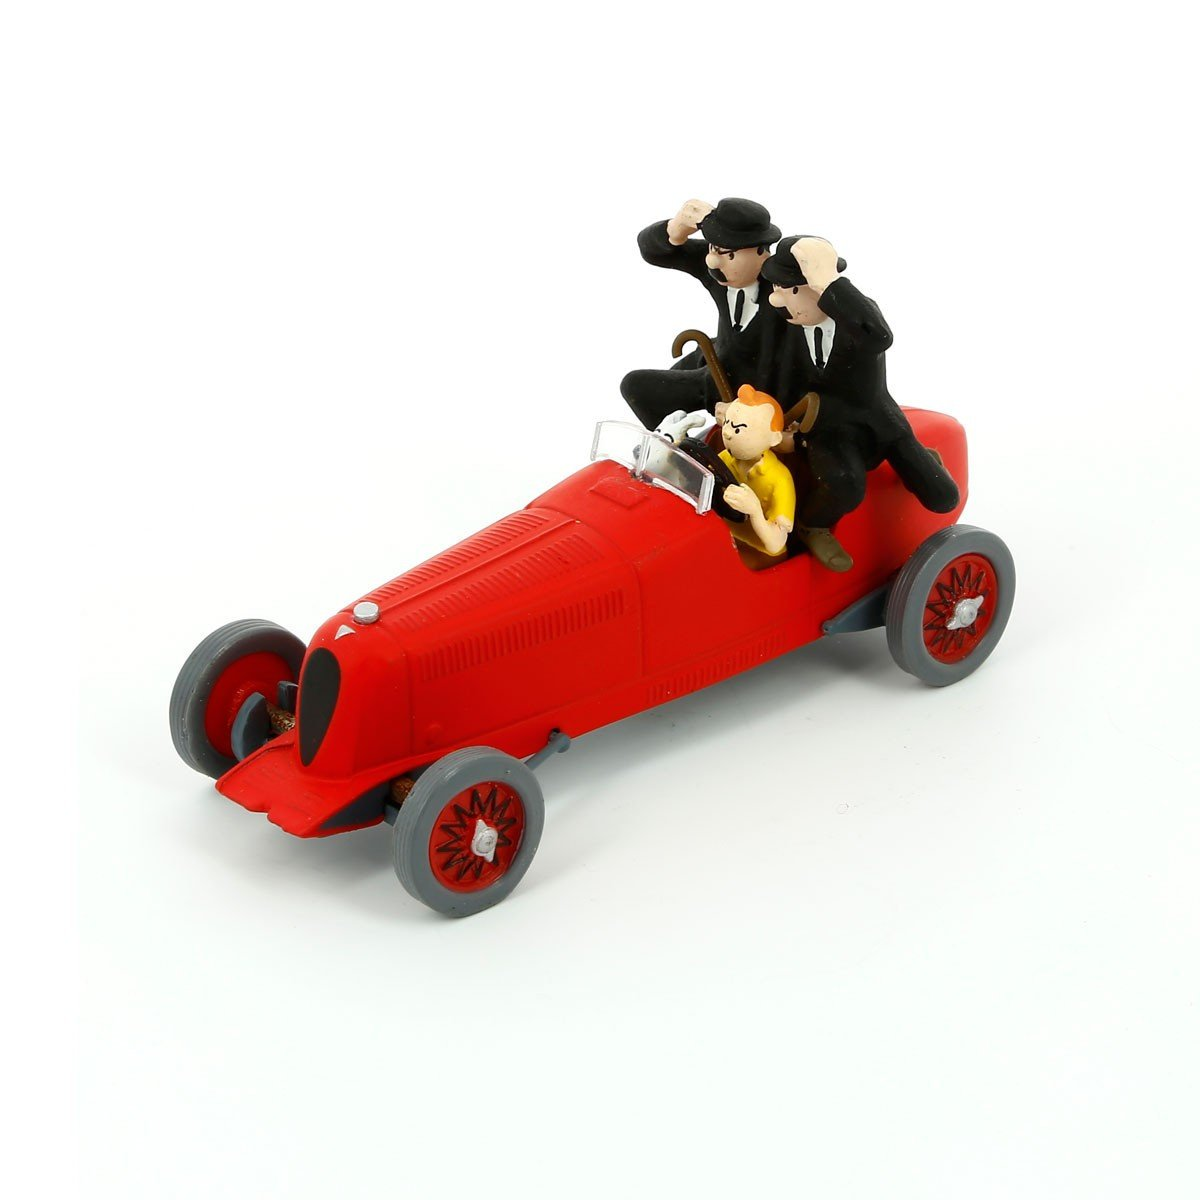 TINTIN CARS 2 - THE RED BOLIDE AMILCAR #8